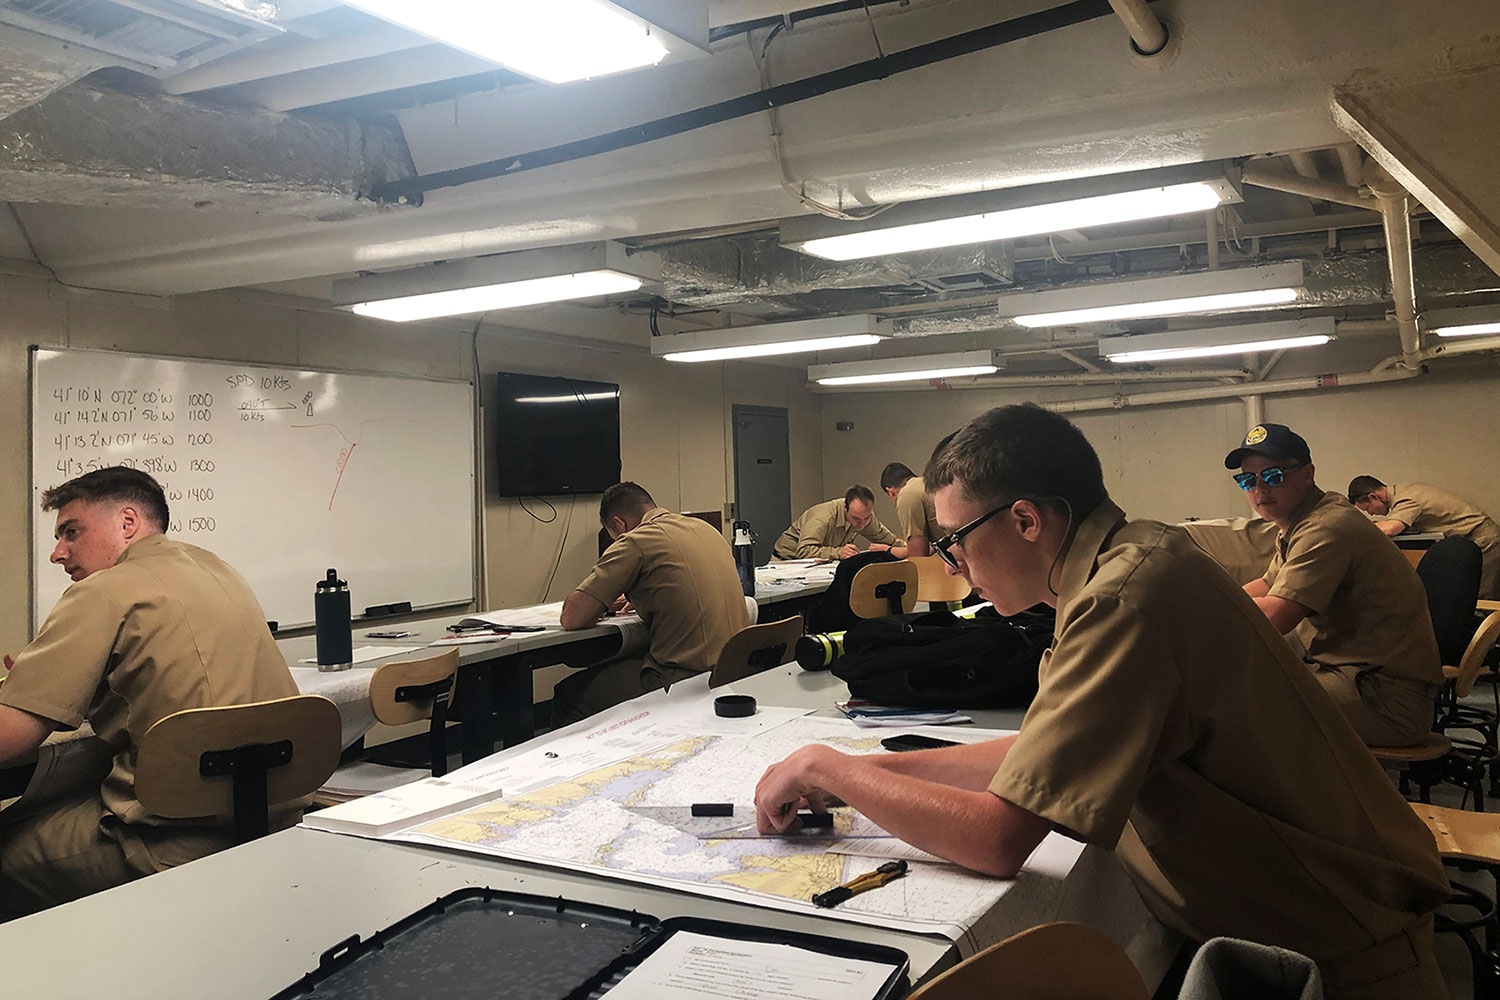 SUNY Maritime College cadets take class while aboard the Empire State VI training ship.